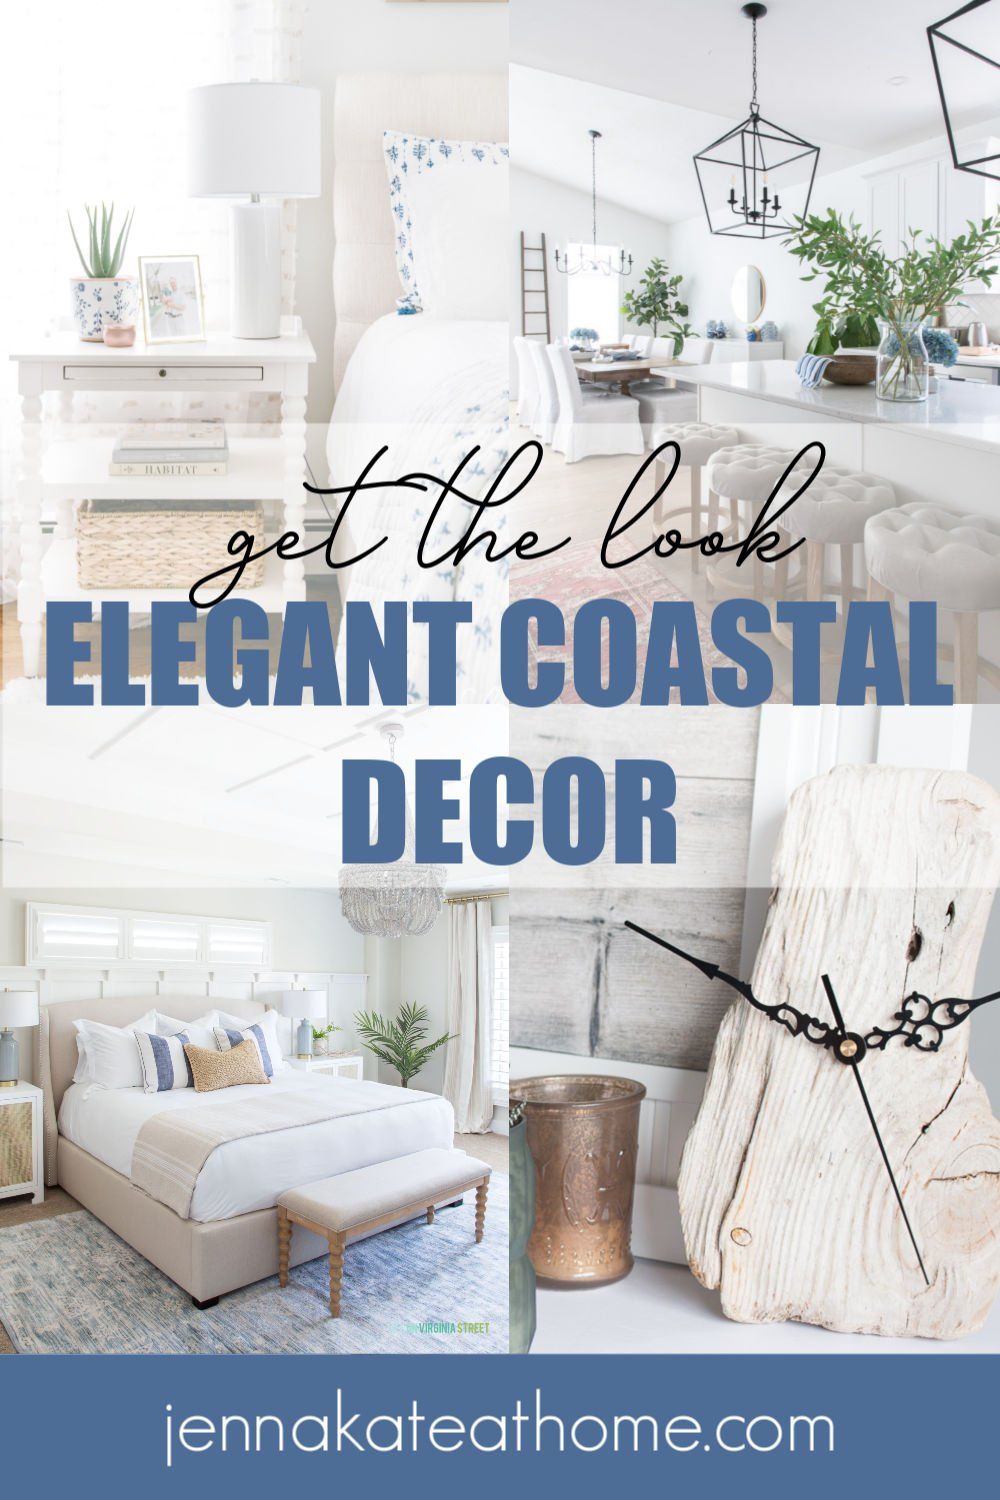 Elegant Coastal Décor Jenna Kate At Home